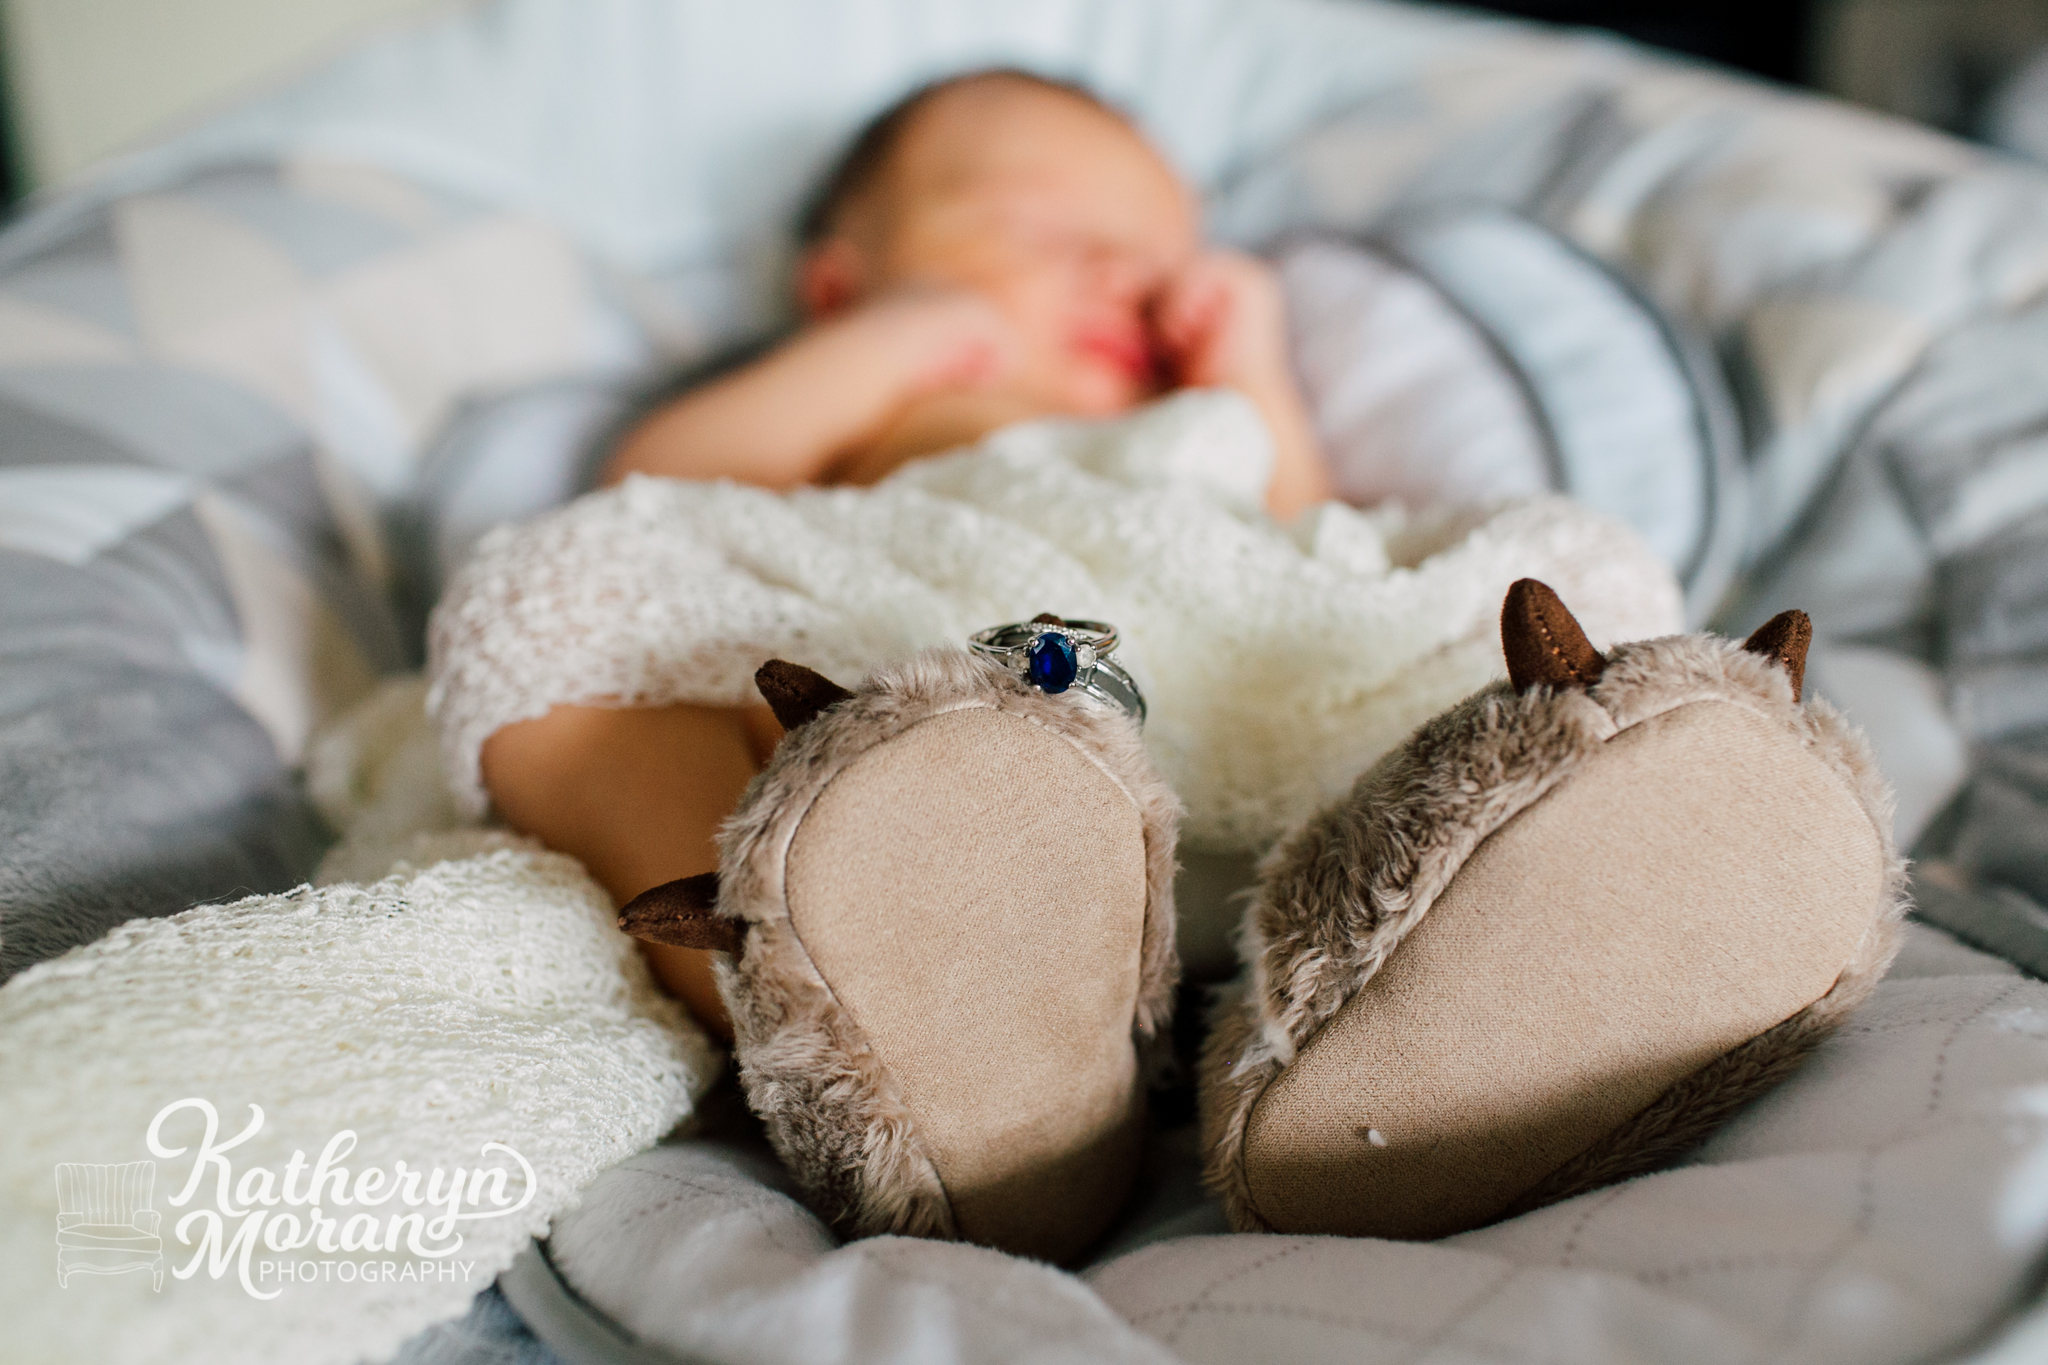 seattle-newborn-lifestyle-photographer-katheryn-moran-5.jpg